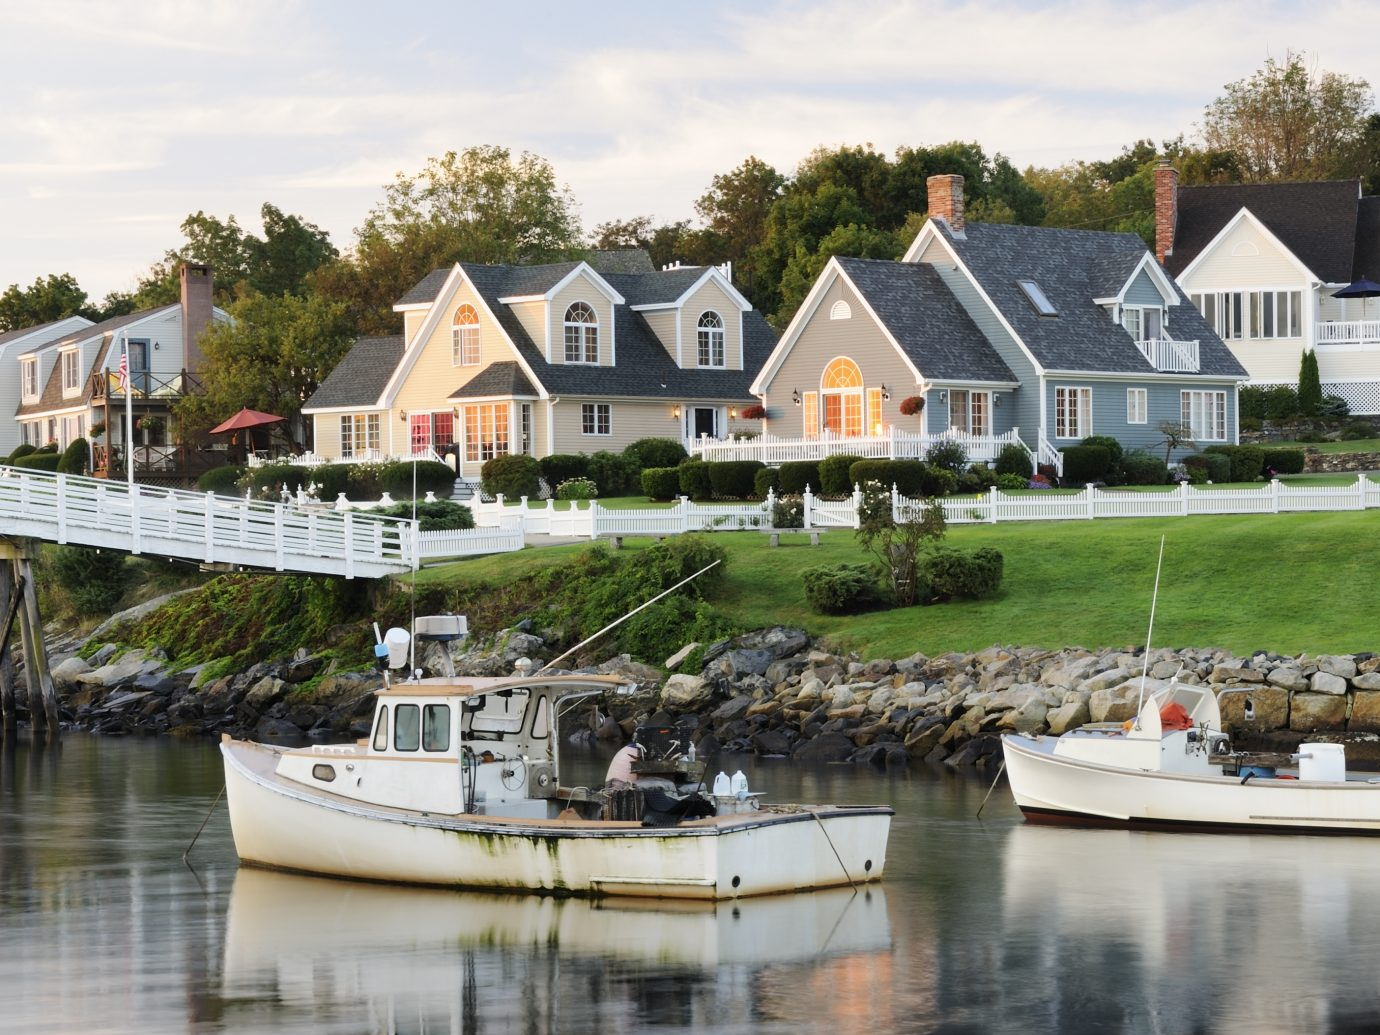 """Fishing boats with houses in background at sunrise, blurred water by long exposure, square picture (Perkins Cove, Ogunquit, Maine USA). Best of Maine and New England in lightbox below..."""